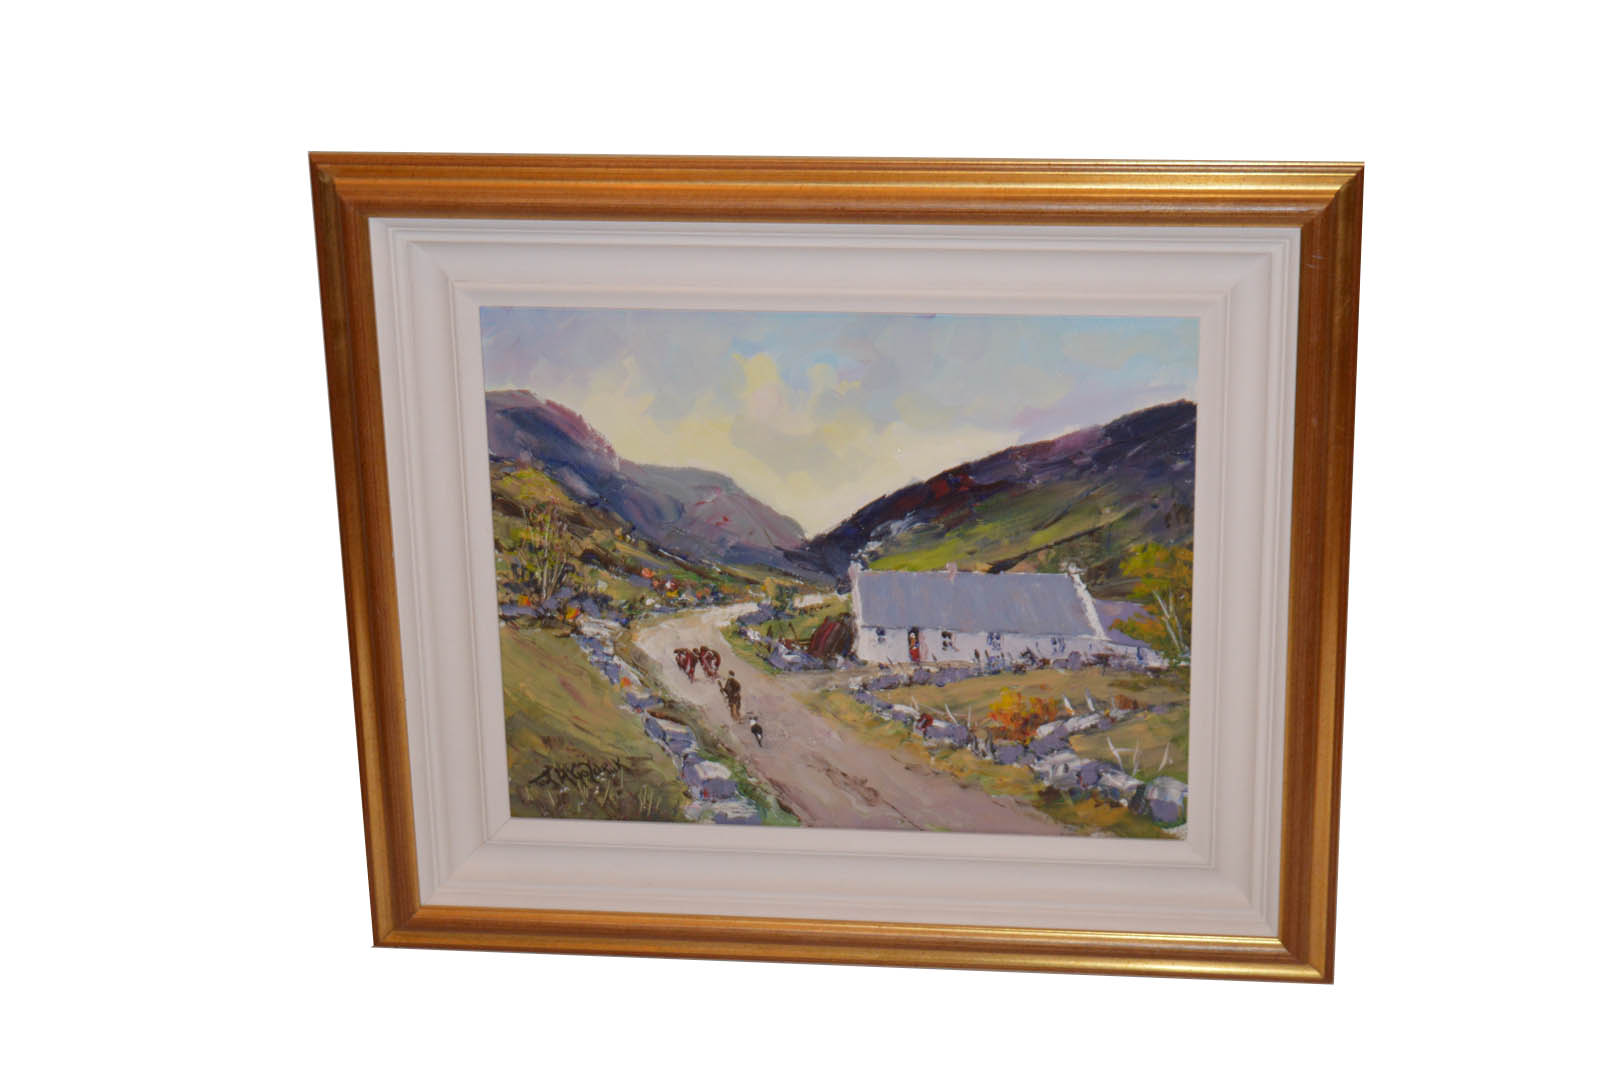 Lot 347 - A Very Nice Oil Painting 'Milking Time' - Tom McGoldrick